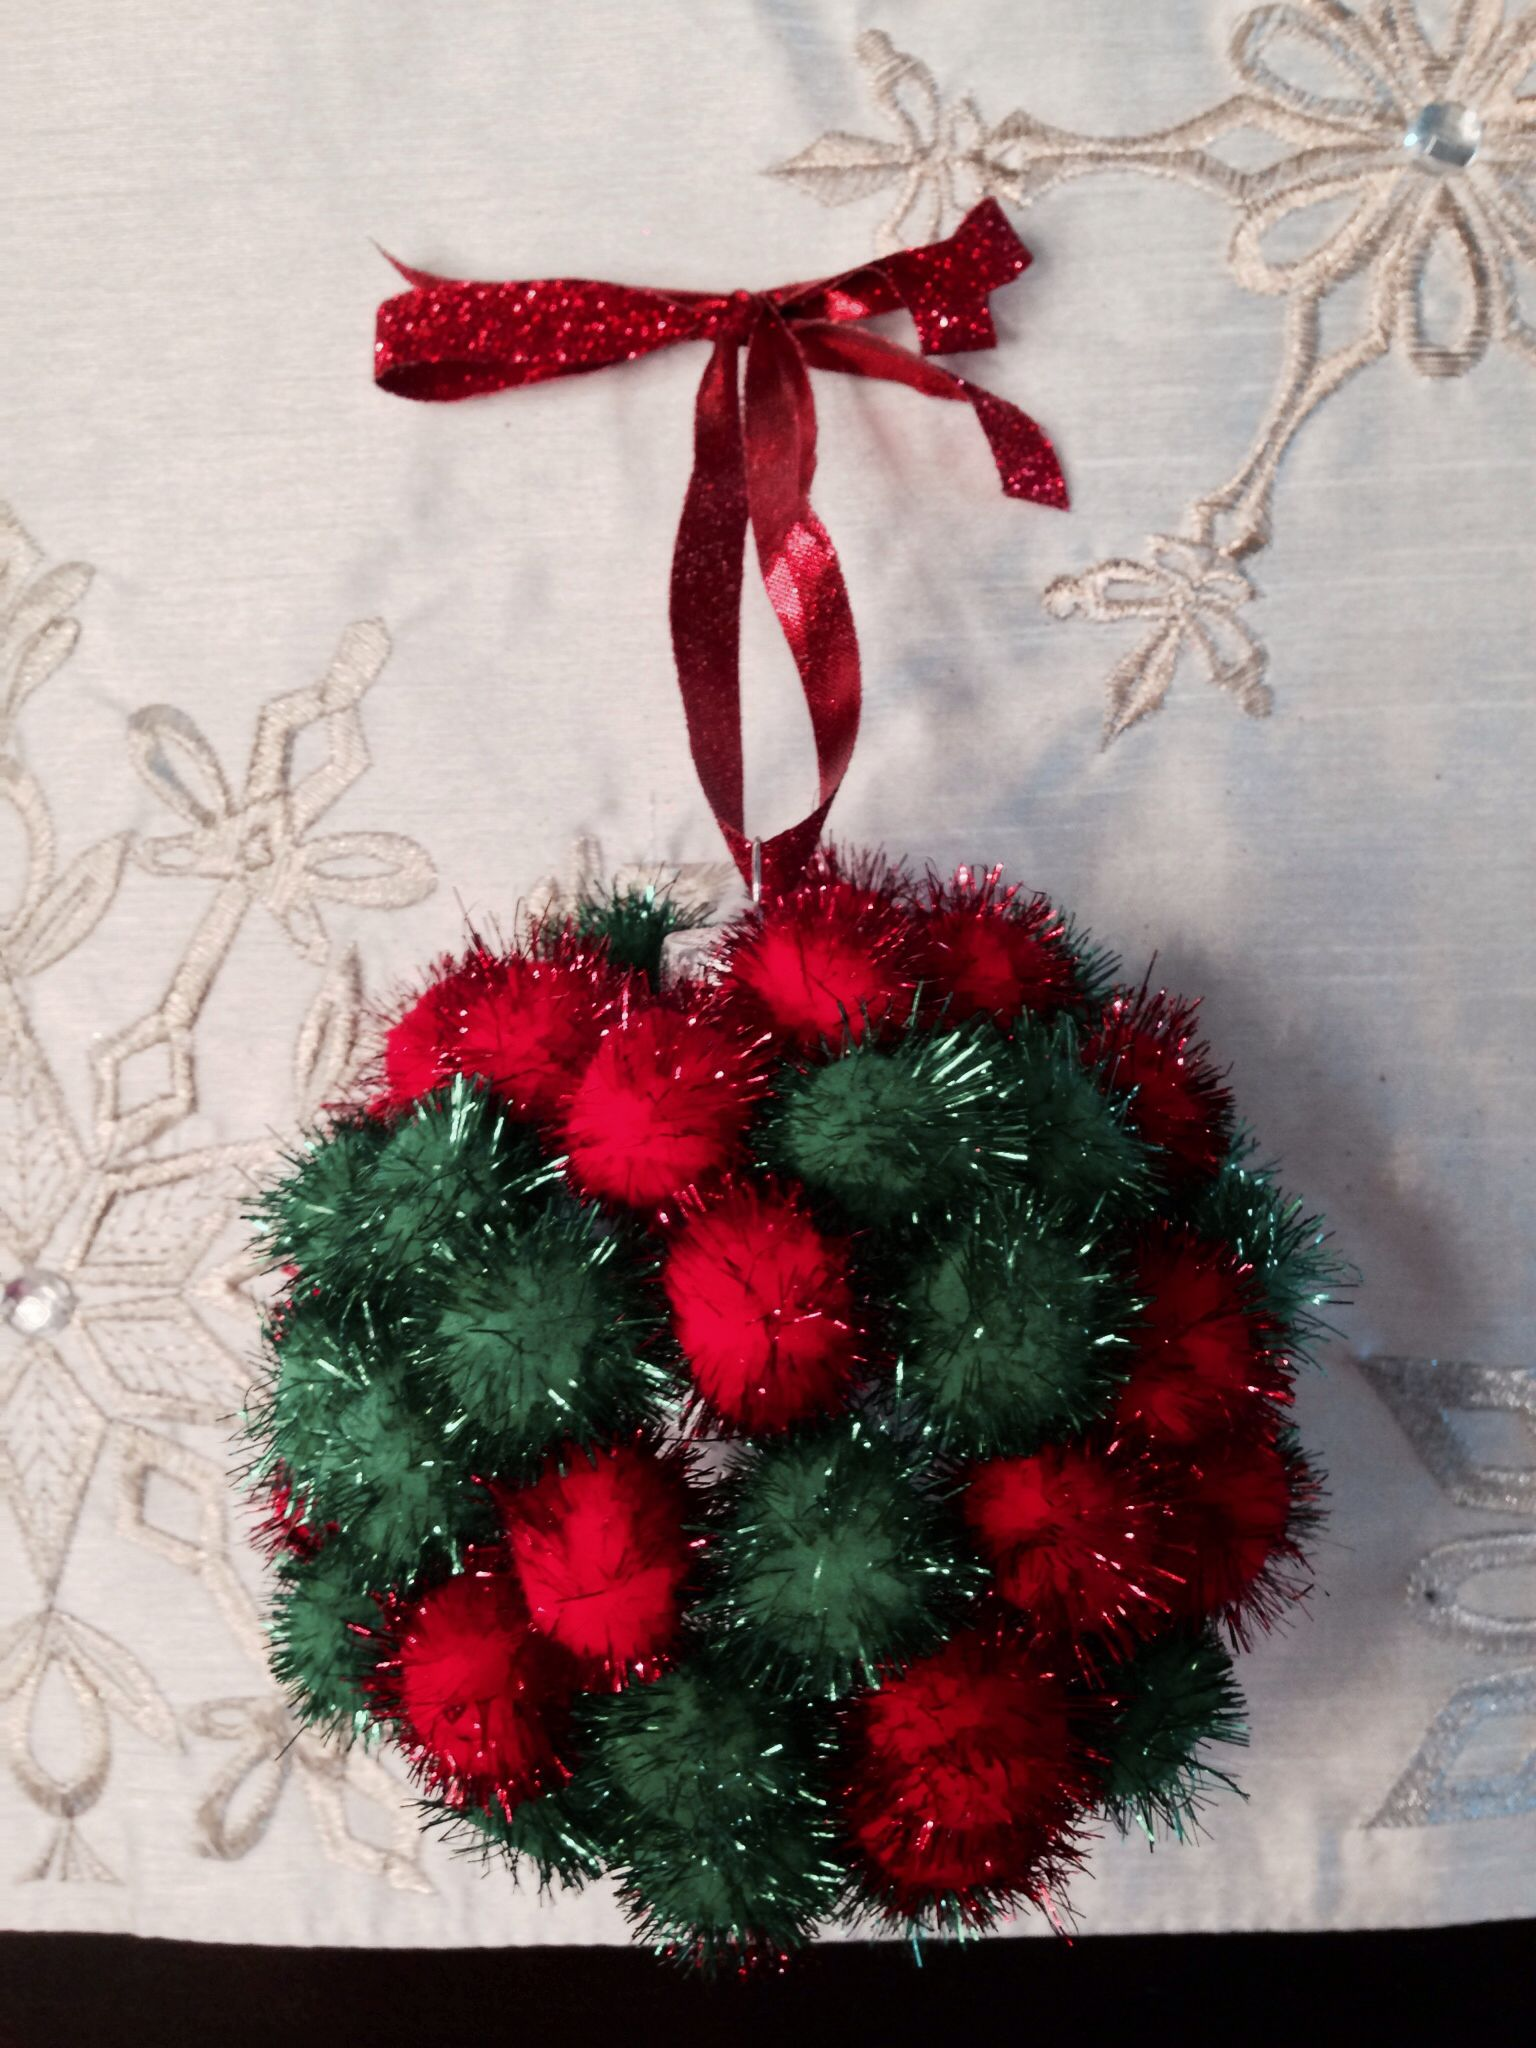 Easy Diy Pom Pom Ornament Made With My 3 Year Old Used